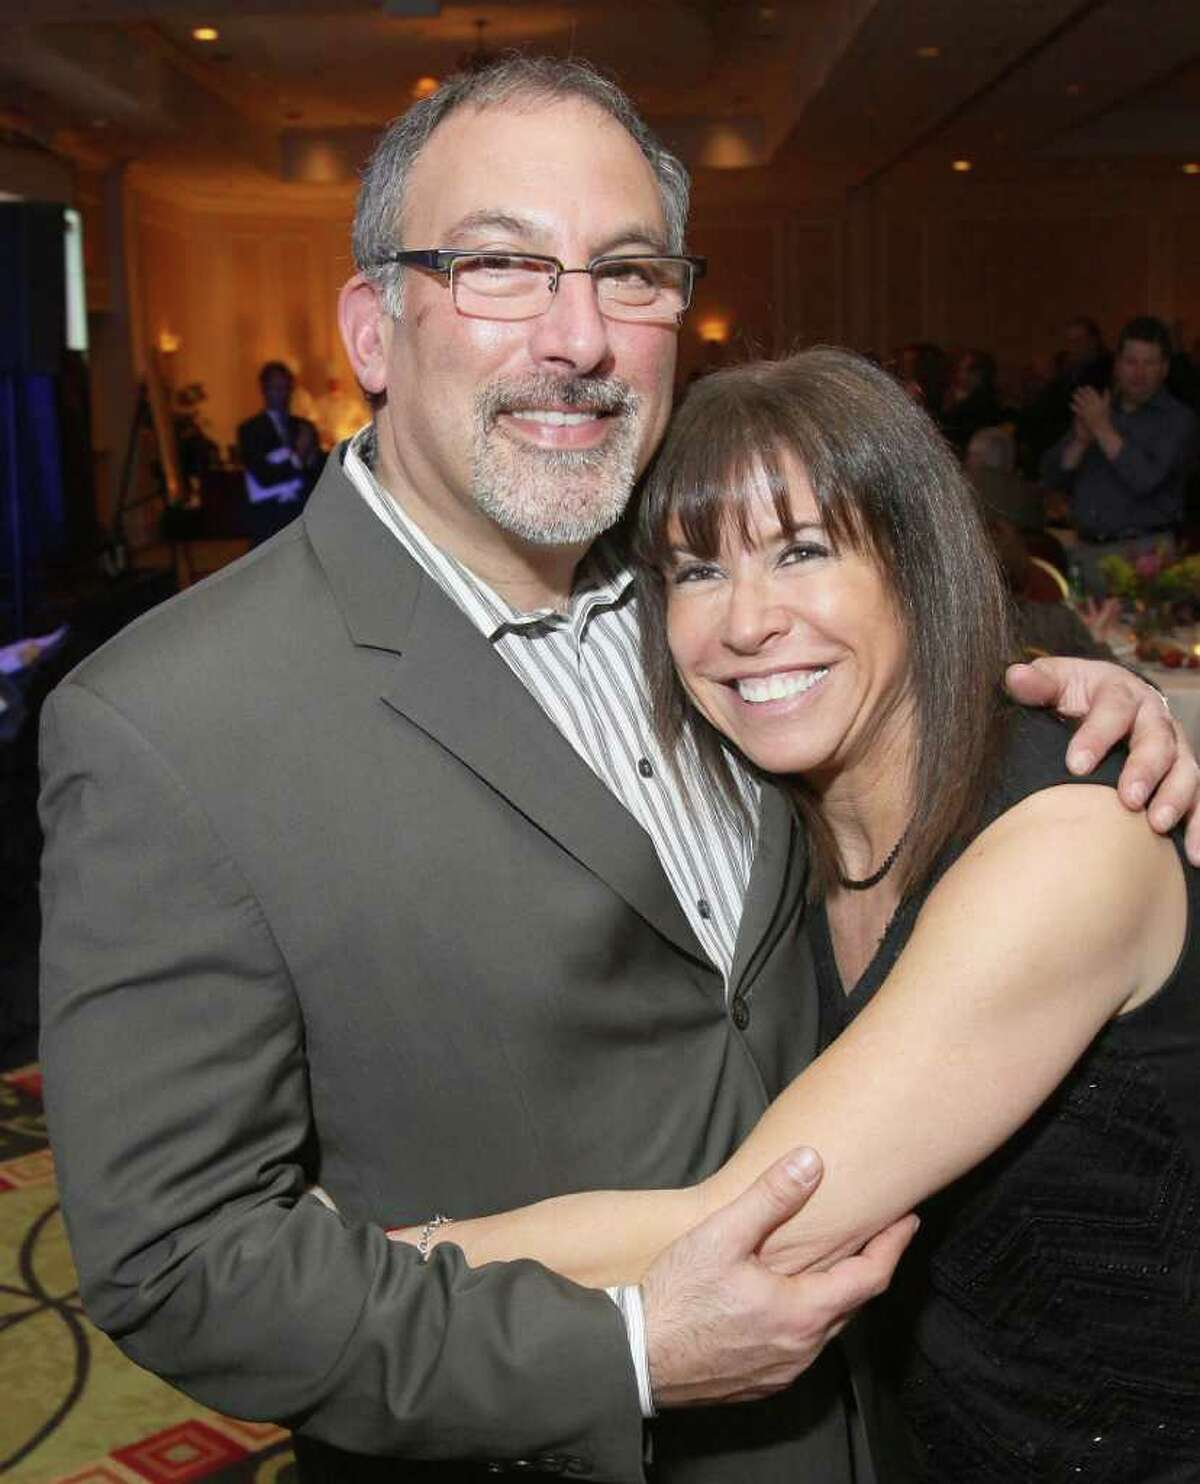 Alan Greenberg and Susan Ungerman get cozy on the dance floor during Taste of Compassion, a Jan. 28, 2011, wine tasting event to benefit the Leukemia & Lymphoma Society Upstate New York/Vermont Chapter. (Joe Putrock / Special to the Times Union)